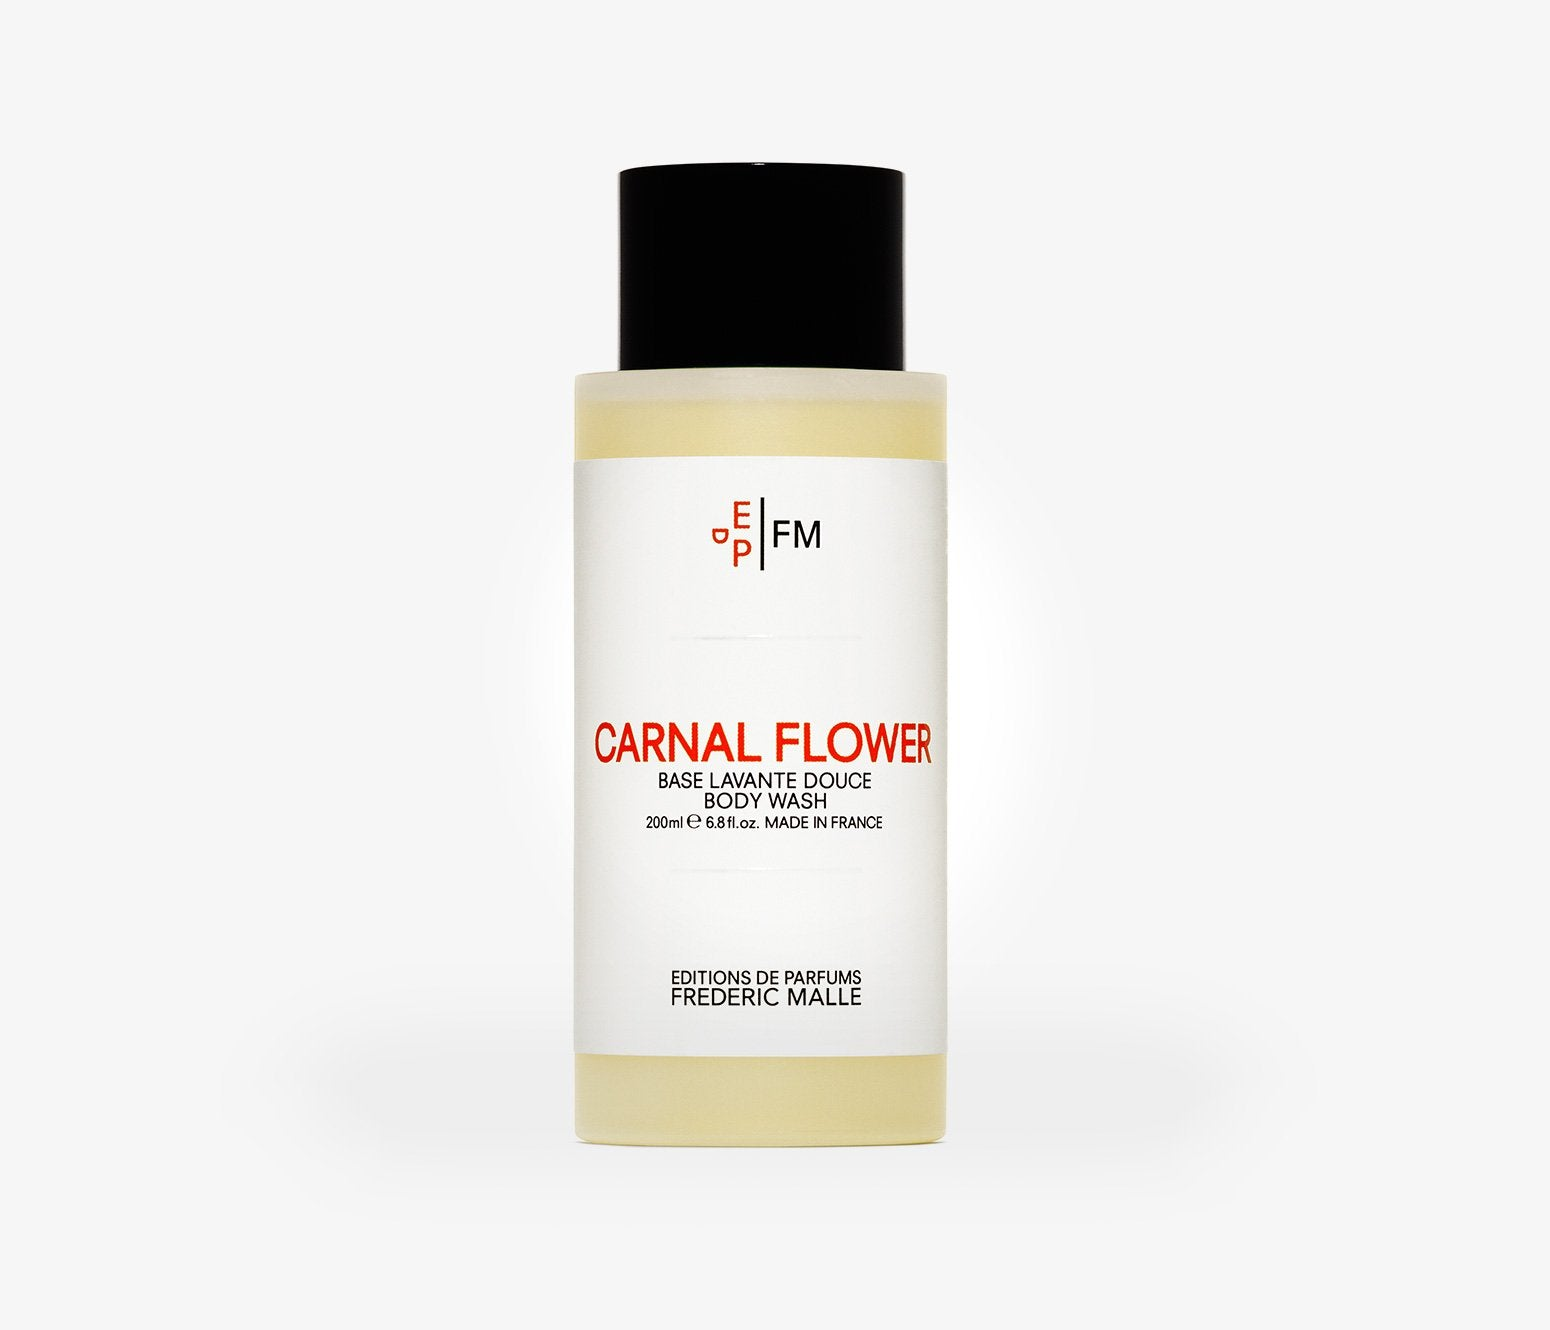 Frederic Malle - Carnal Flower Body Wash - 200ml - BLJ001 - Product Image - Body Wash - Les Senteurs